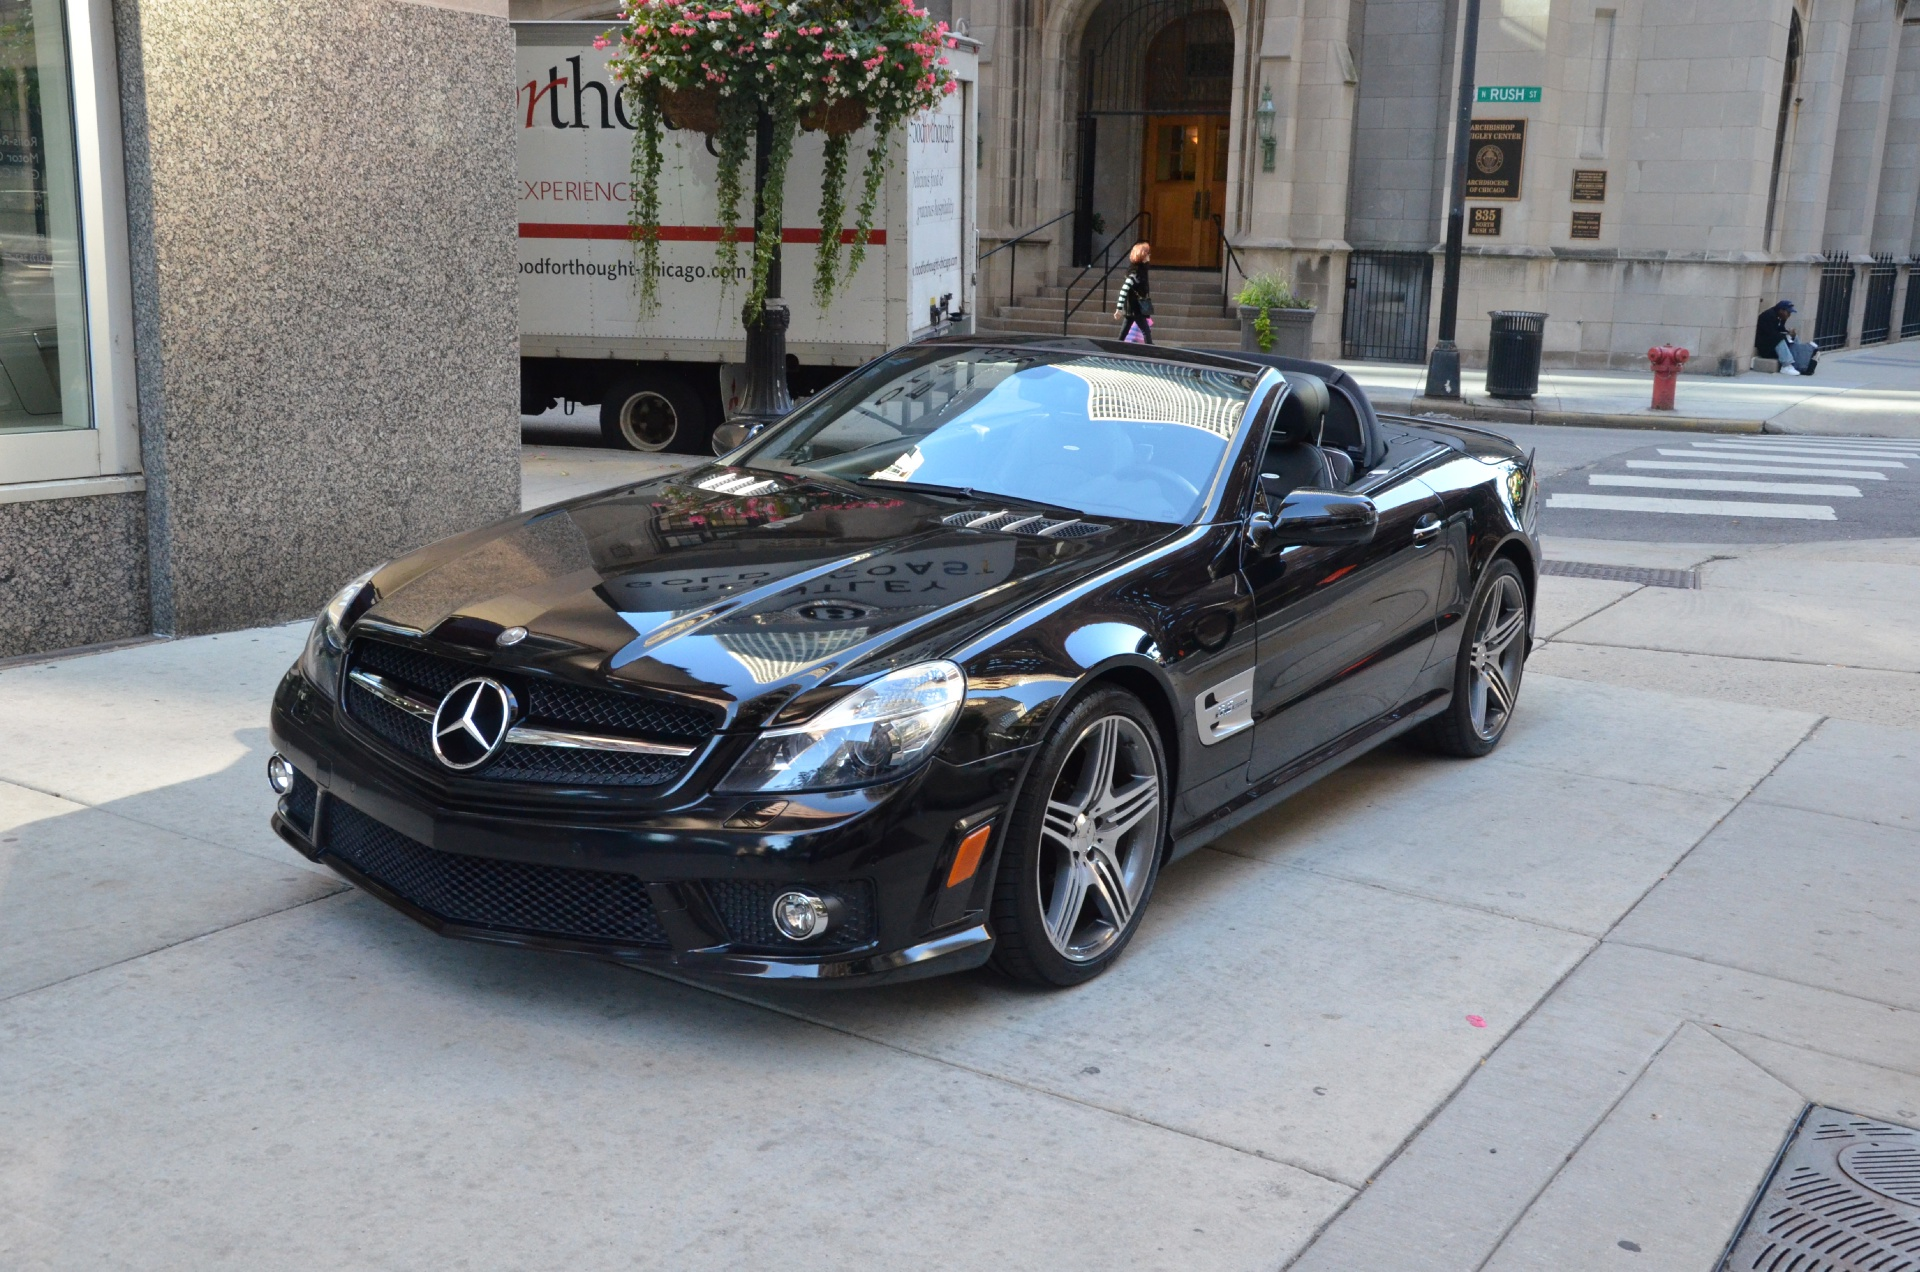 2009 mercedes benz sl class sl63 amg used bentley used for 2009 mercedes benz sl63 amg